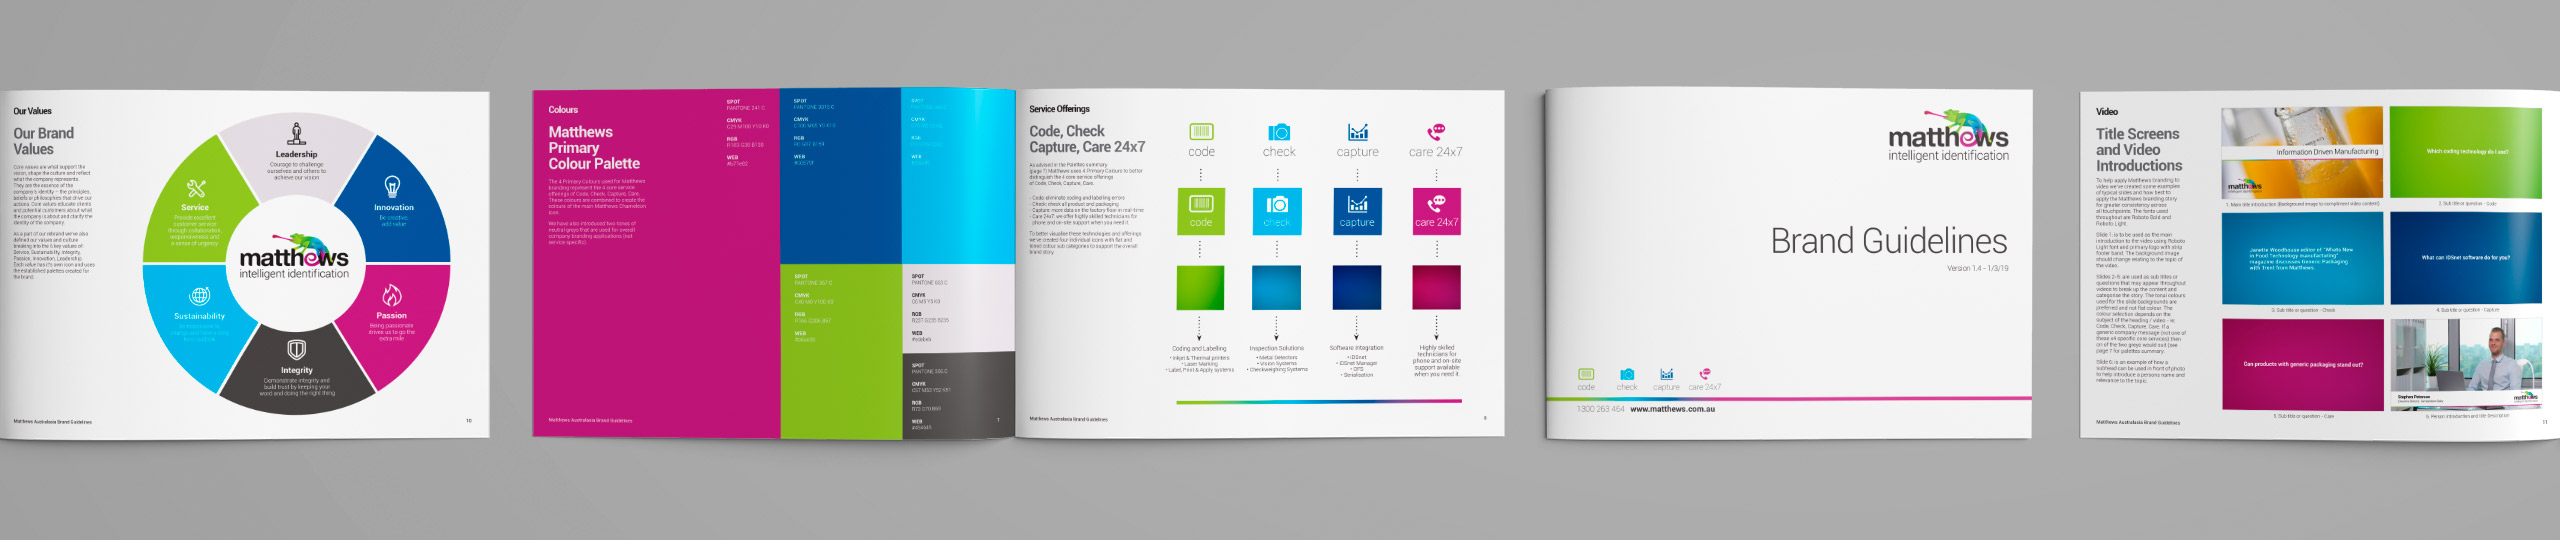 Matthews Brand Guidelines Brand Strategy Marketing Campaign Brand Design